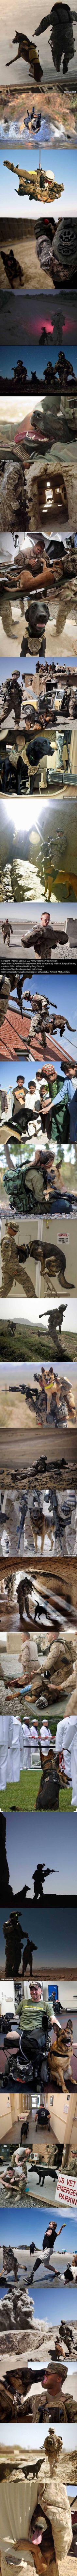 Cry 'Havoc!', and let slip the dogs of war